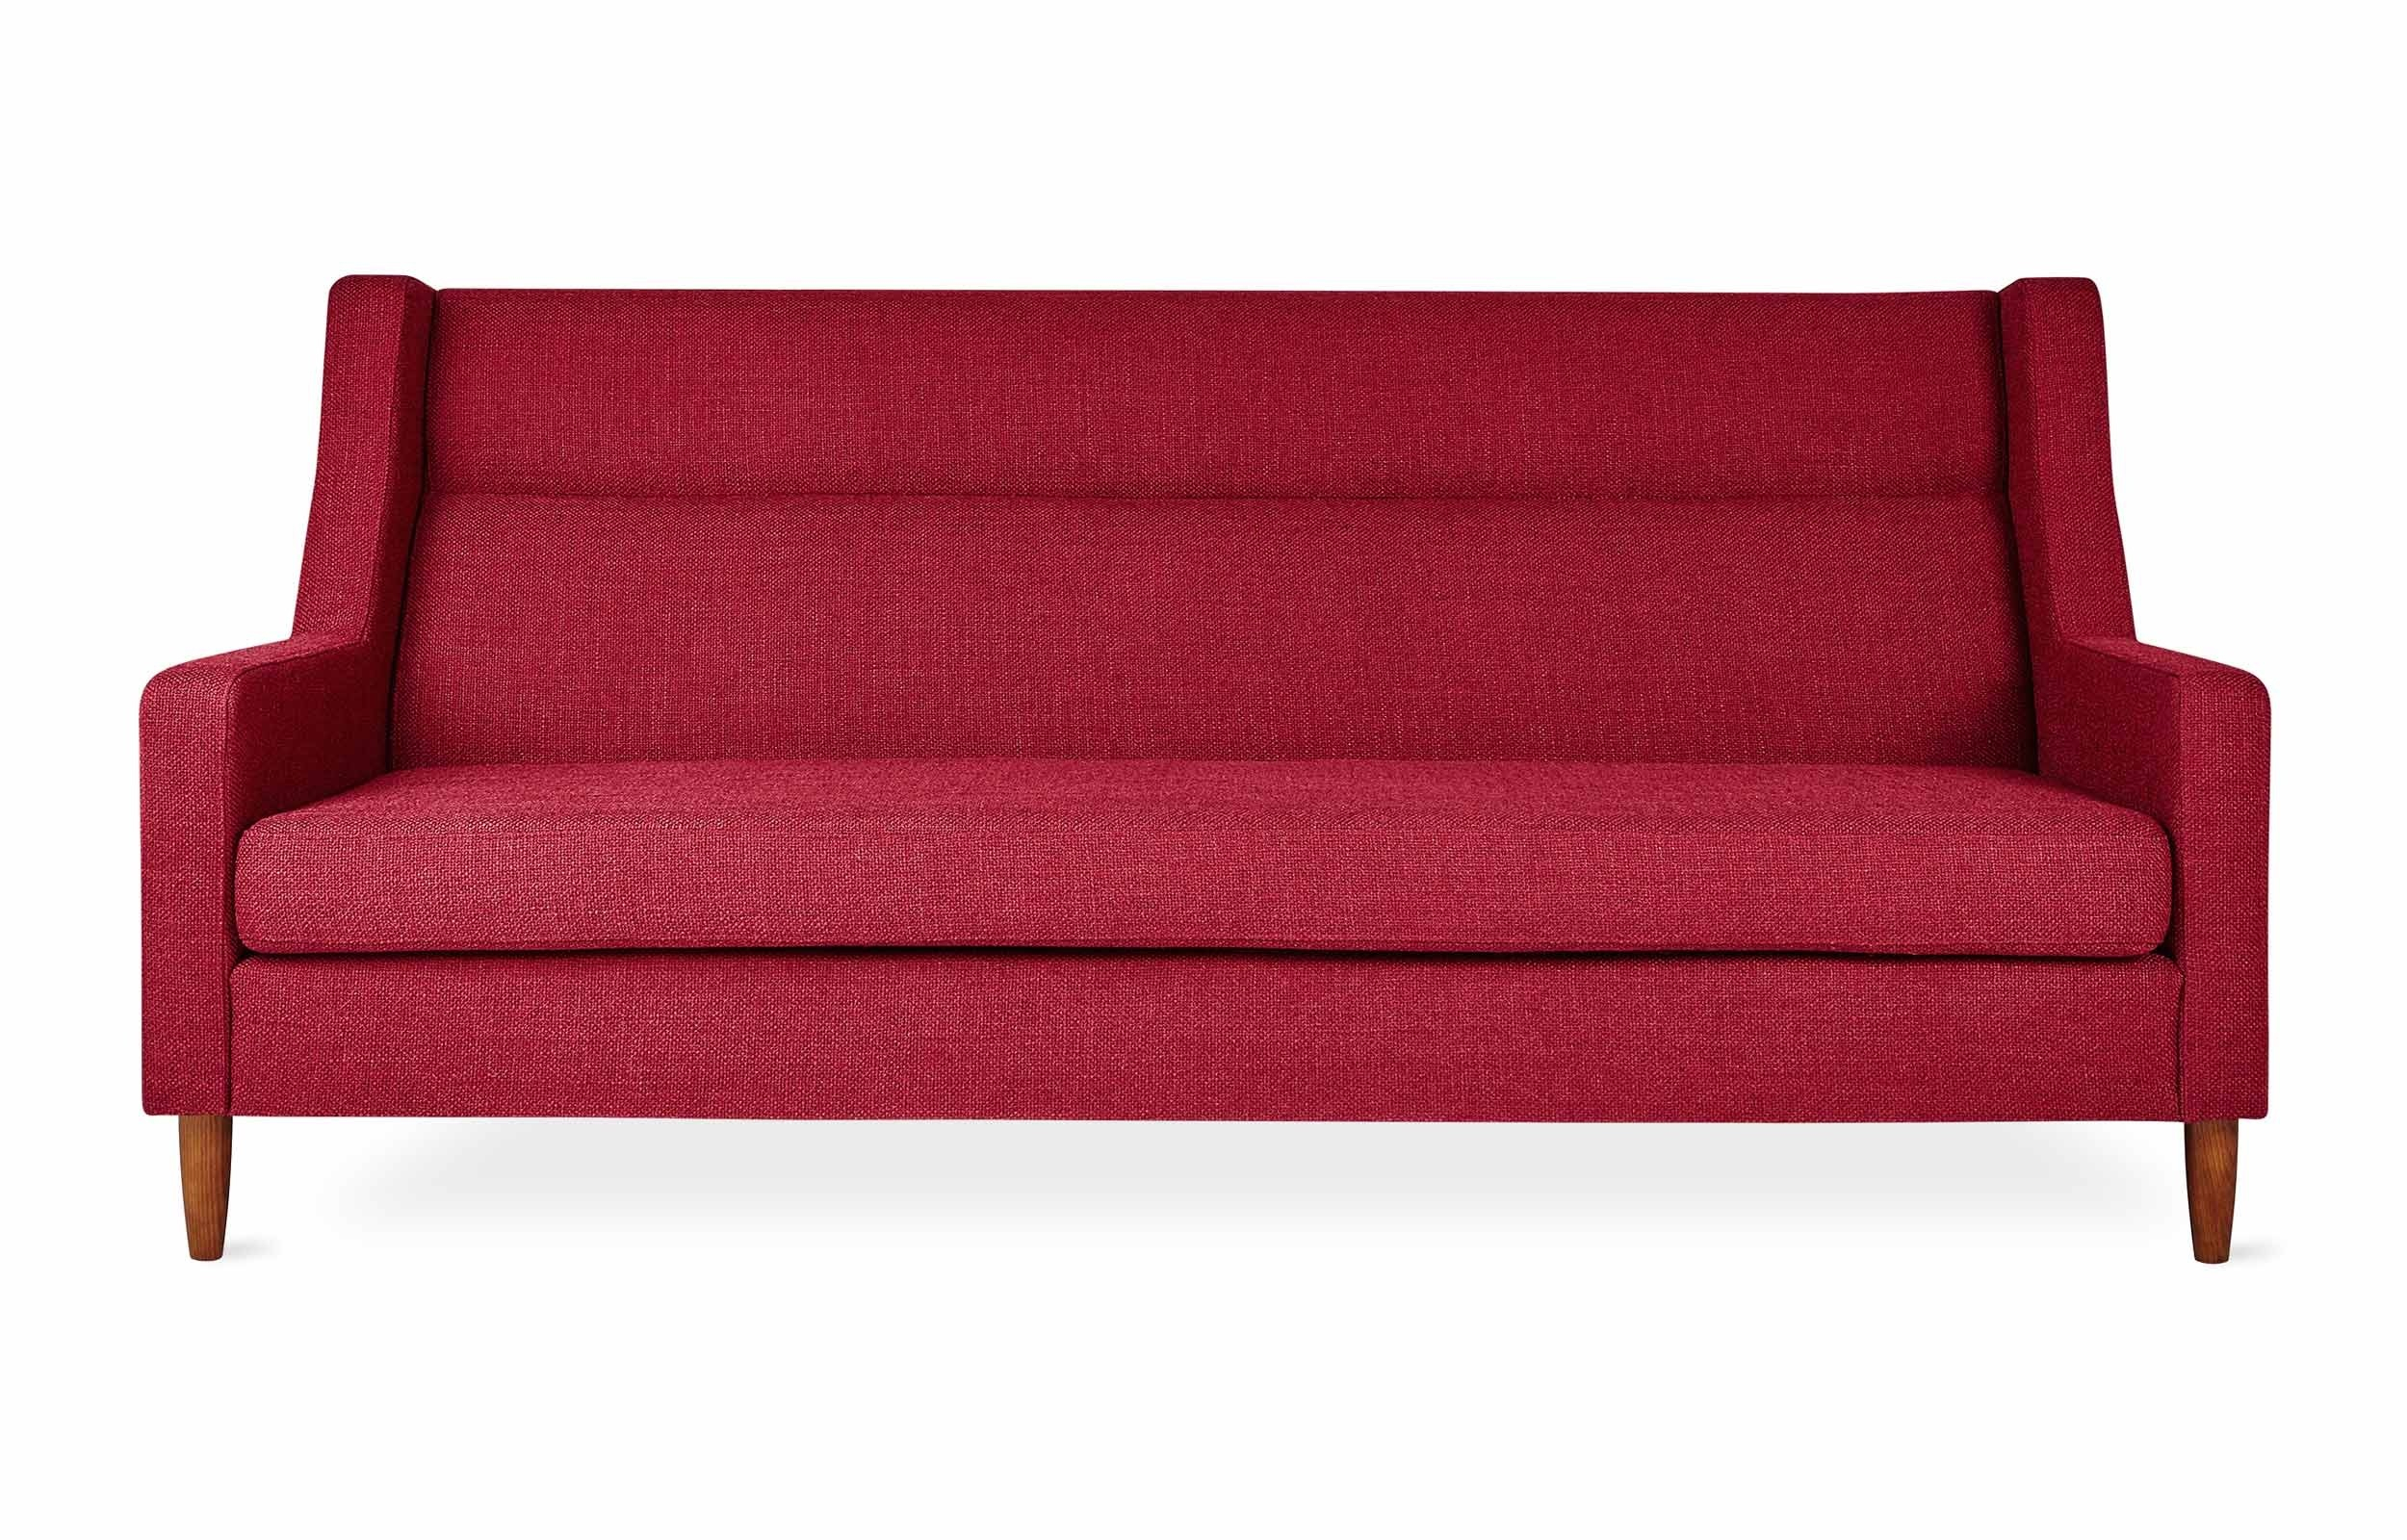 Carmichael Loft Sofa | Viesso With Loft Arm Sofa Chairs (Image 6 of 25)